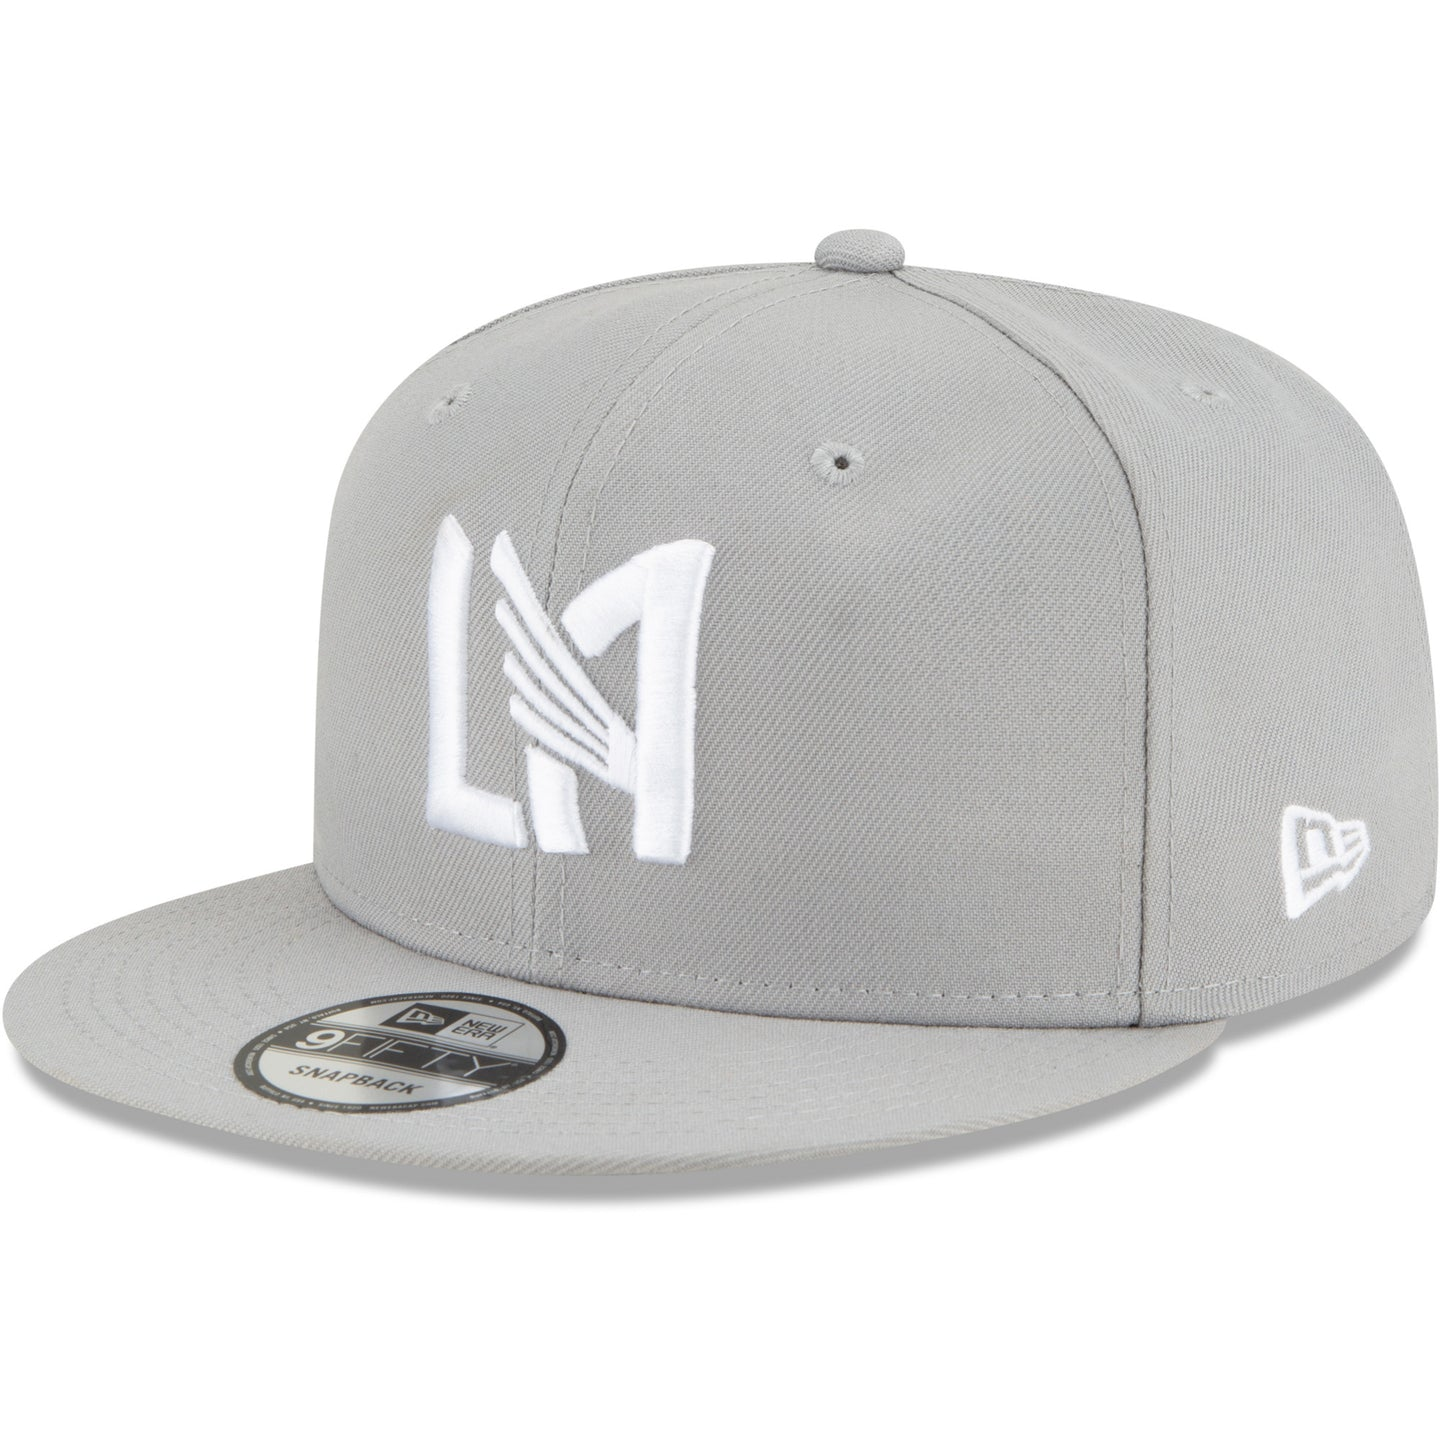 Men's LAFC New Era Gray Street x Street Icon 9FIFTY Adjustable Snapback Hat